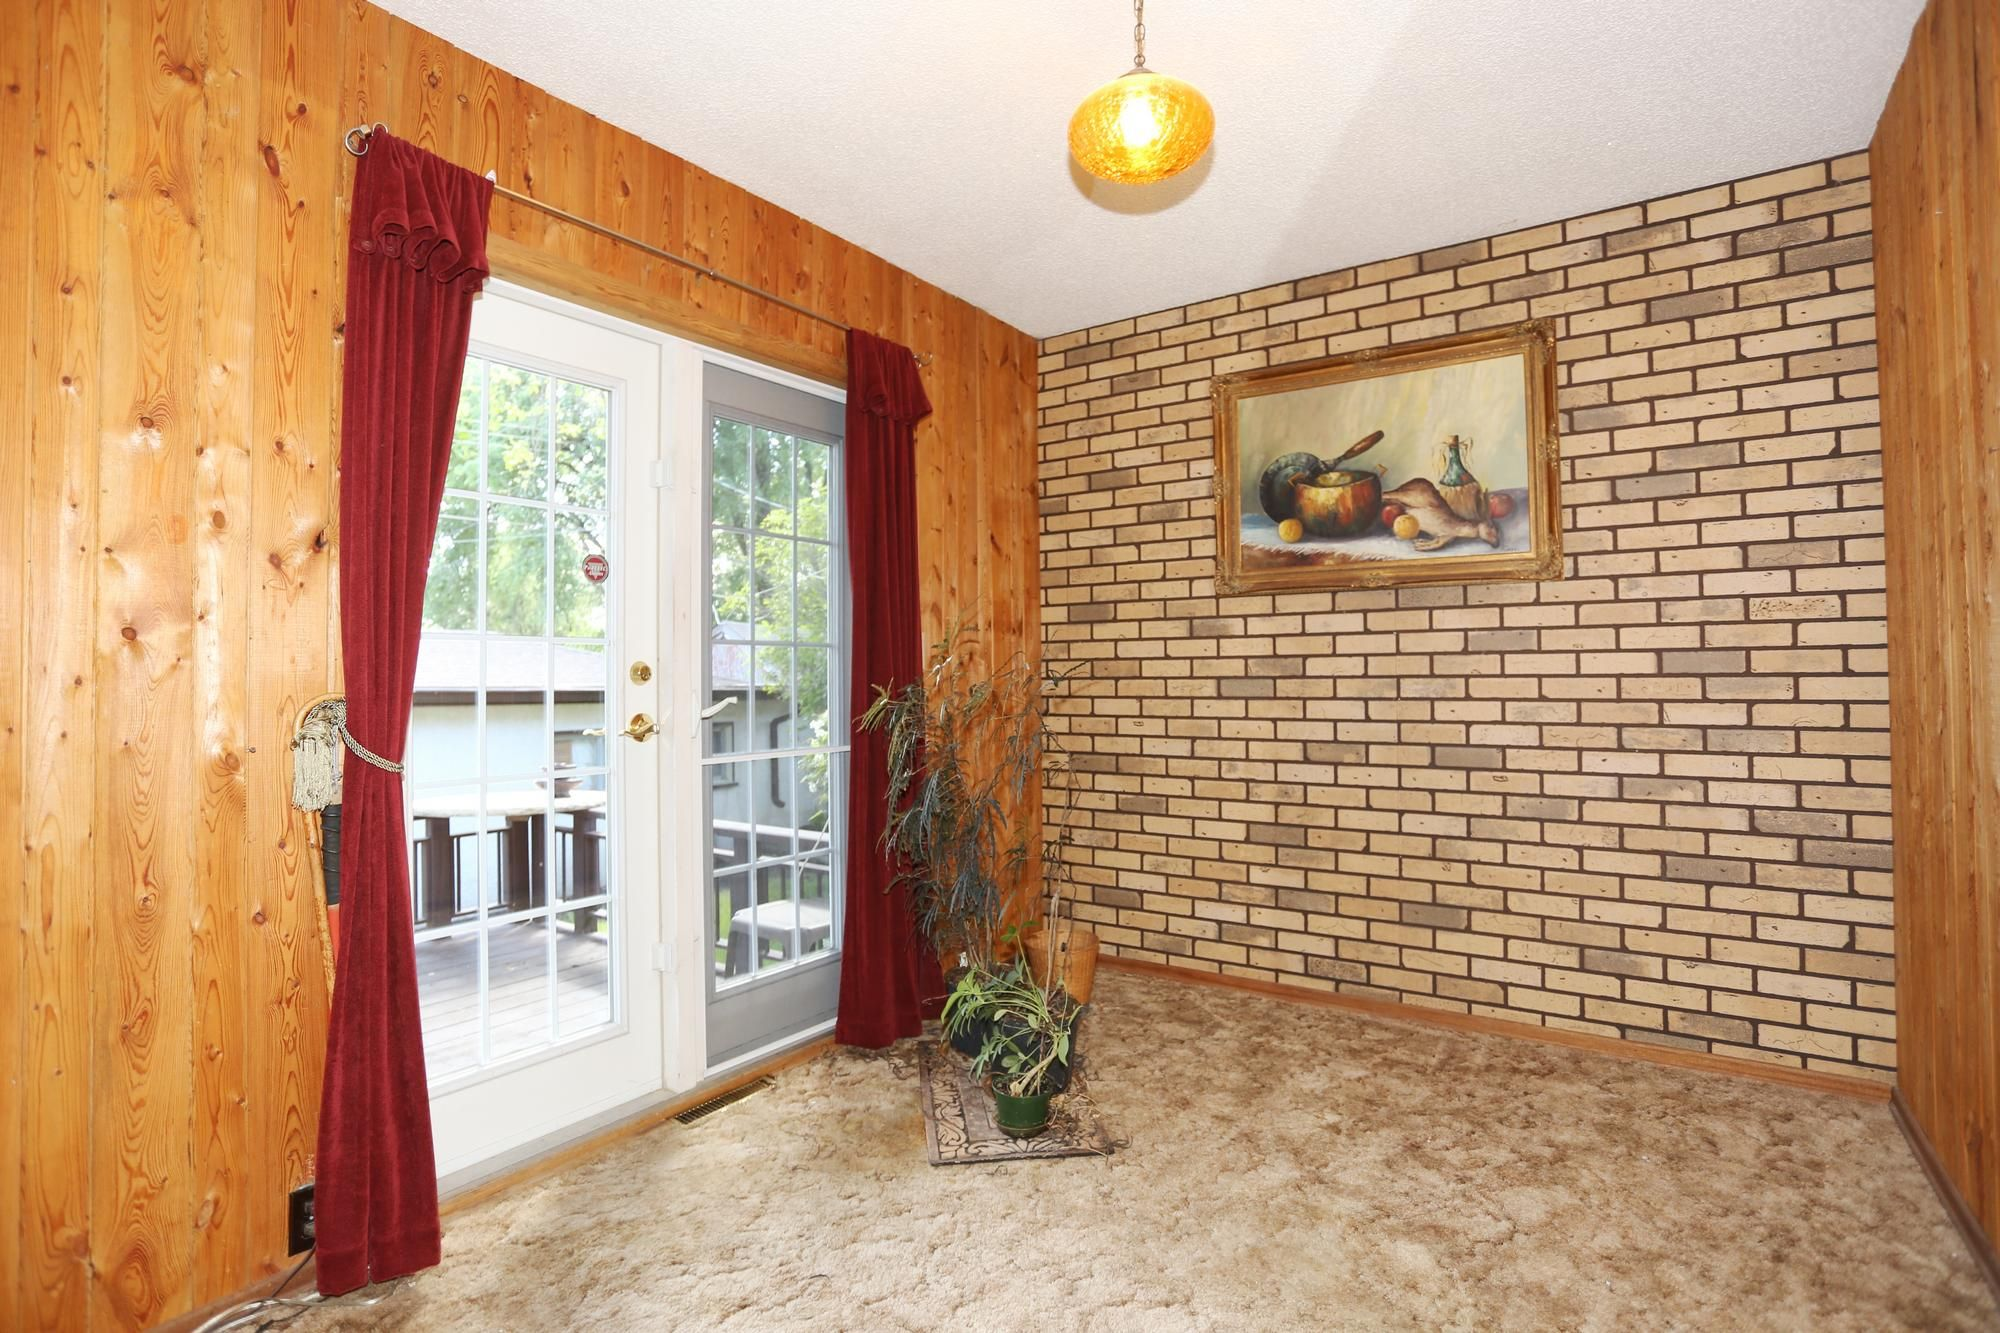 Photo 17: Photos: 1320 Valour Road in Winnipeg: West End Single Family Detached for sale (5C)  : MLS®# 1816744